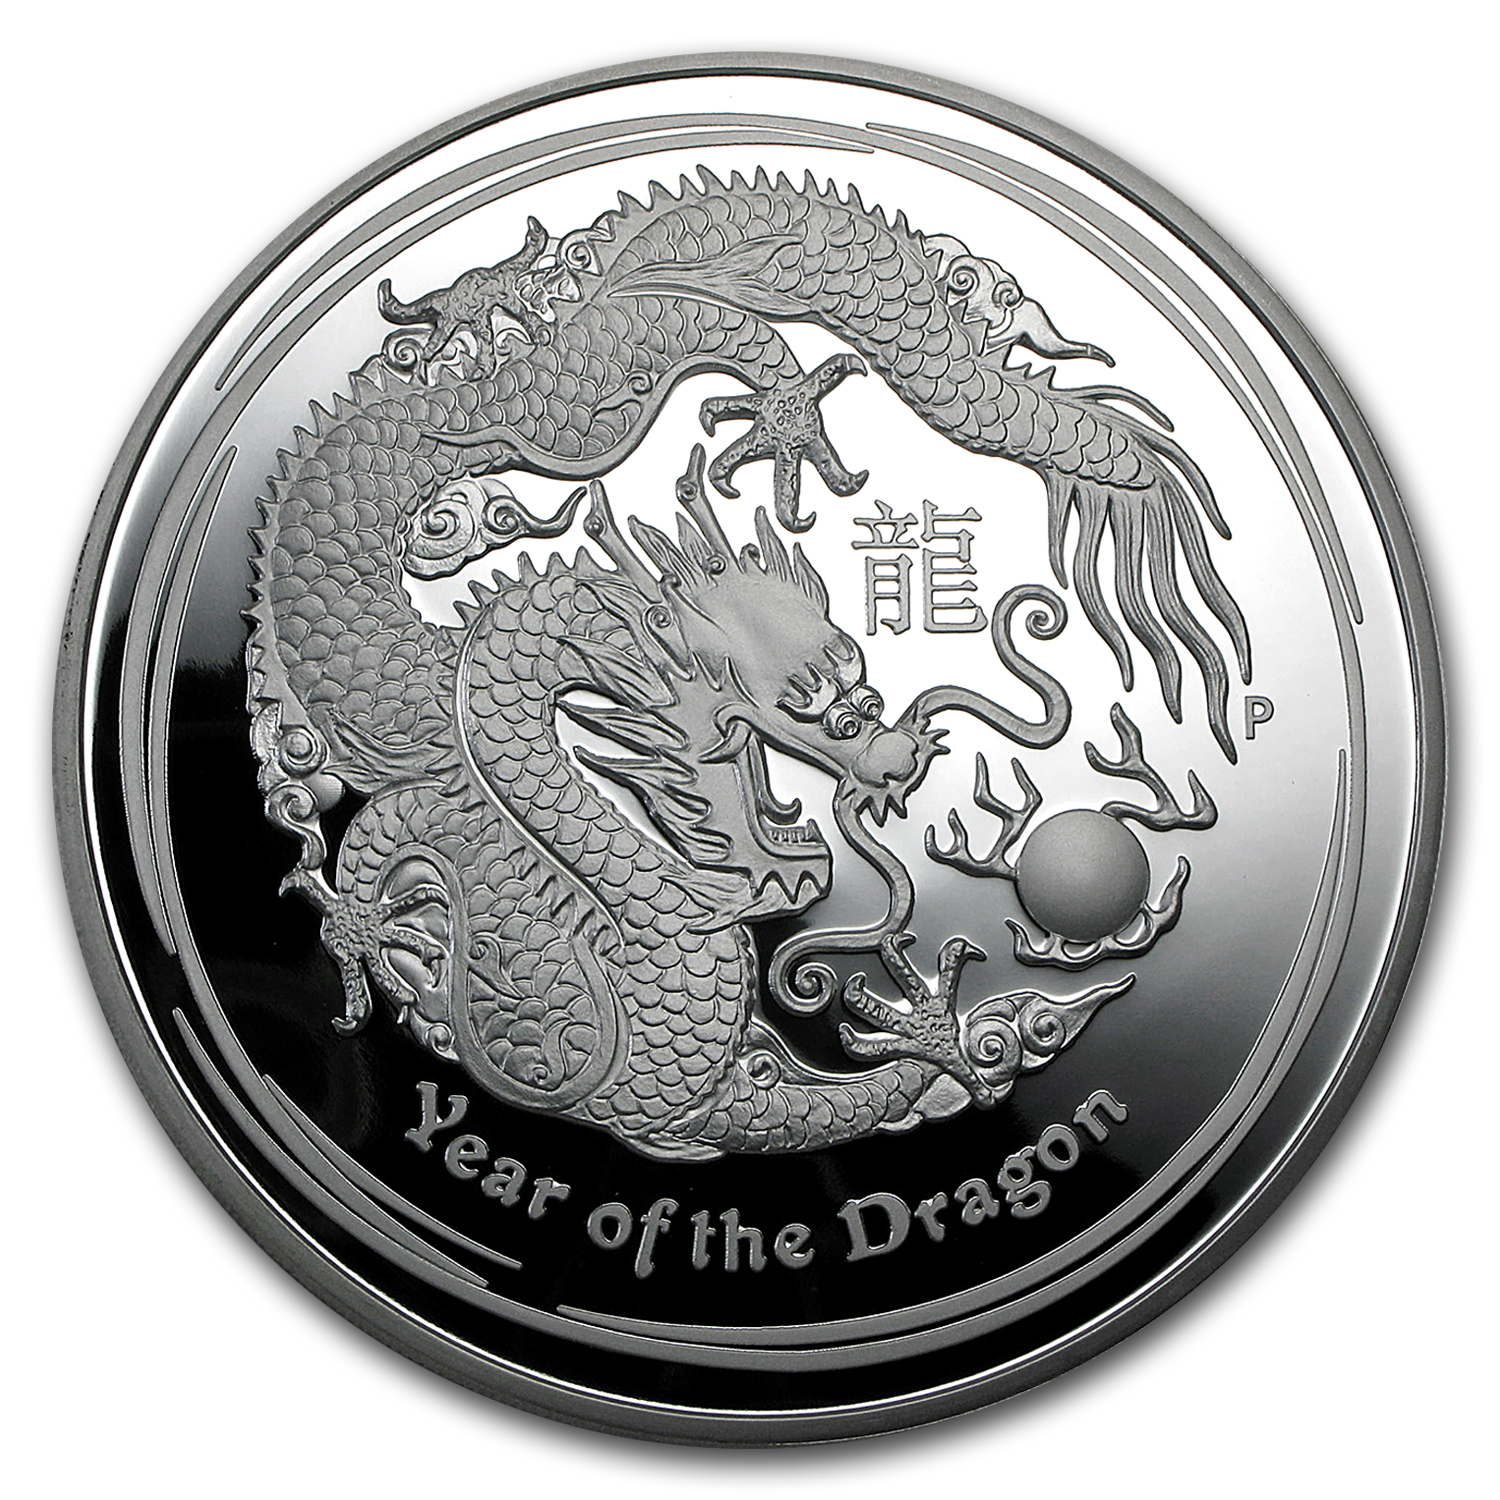 2012 Year of the Dragon - 1 Kilo Proof Silver Coin (Series II)